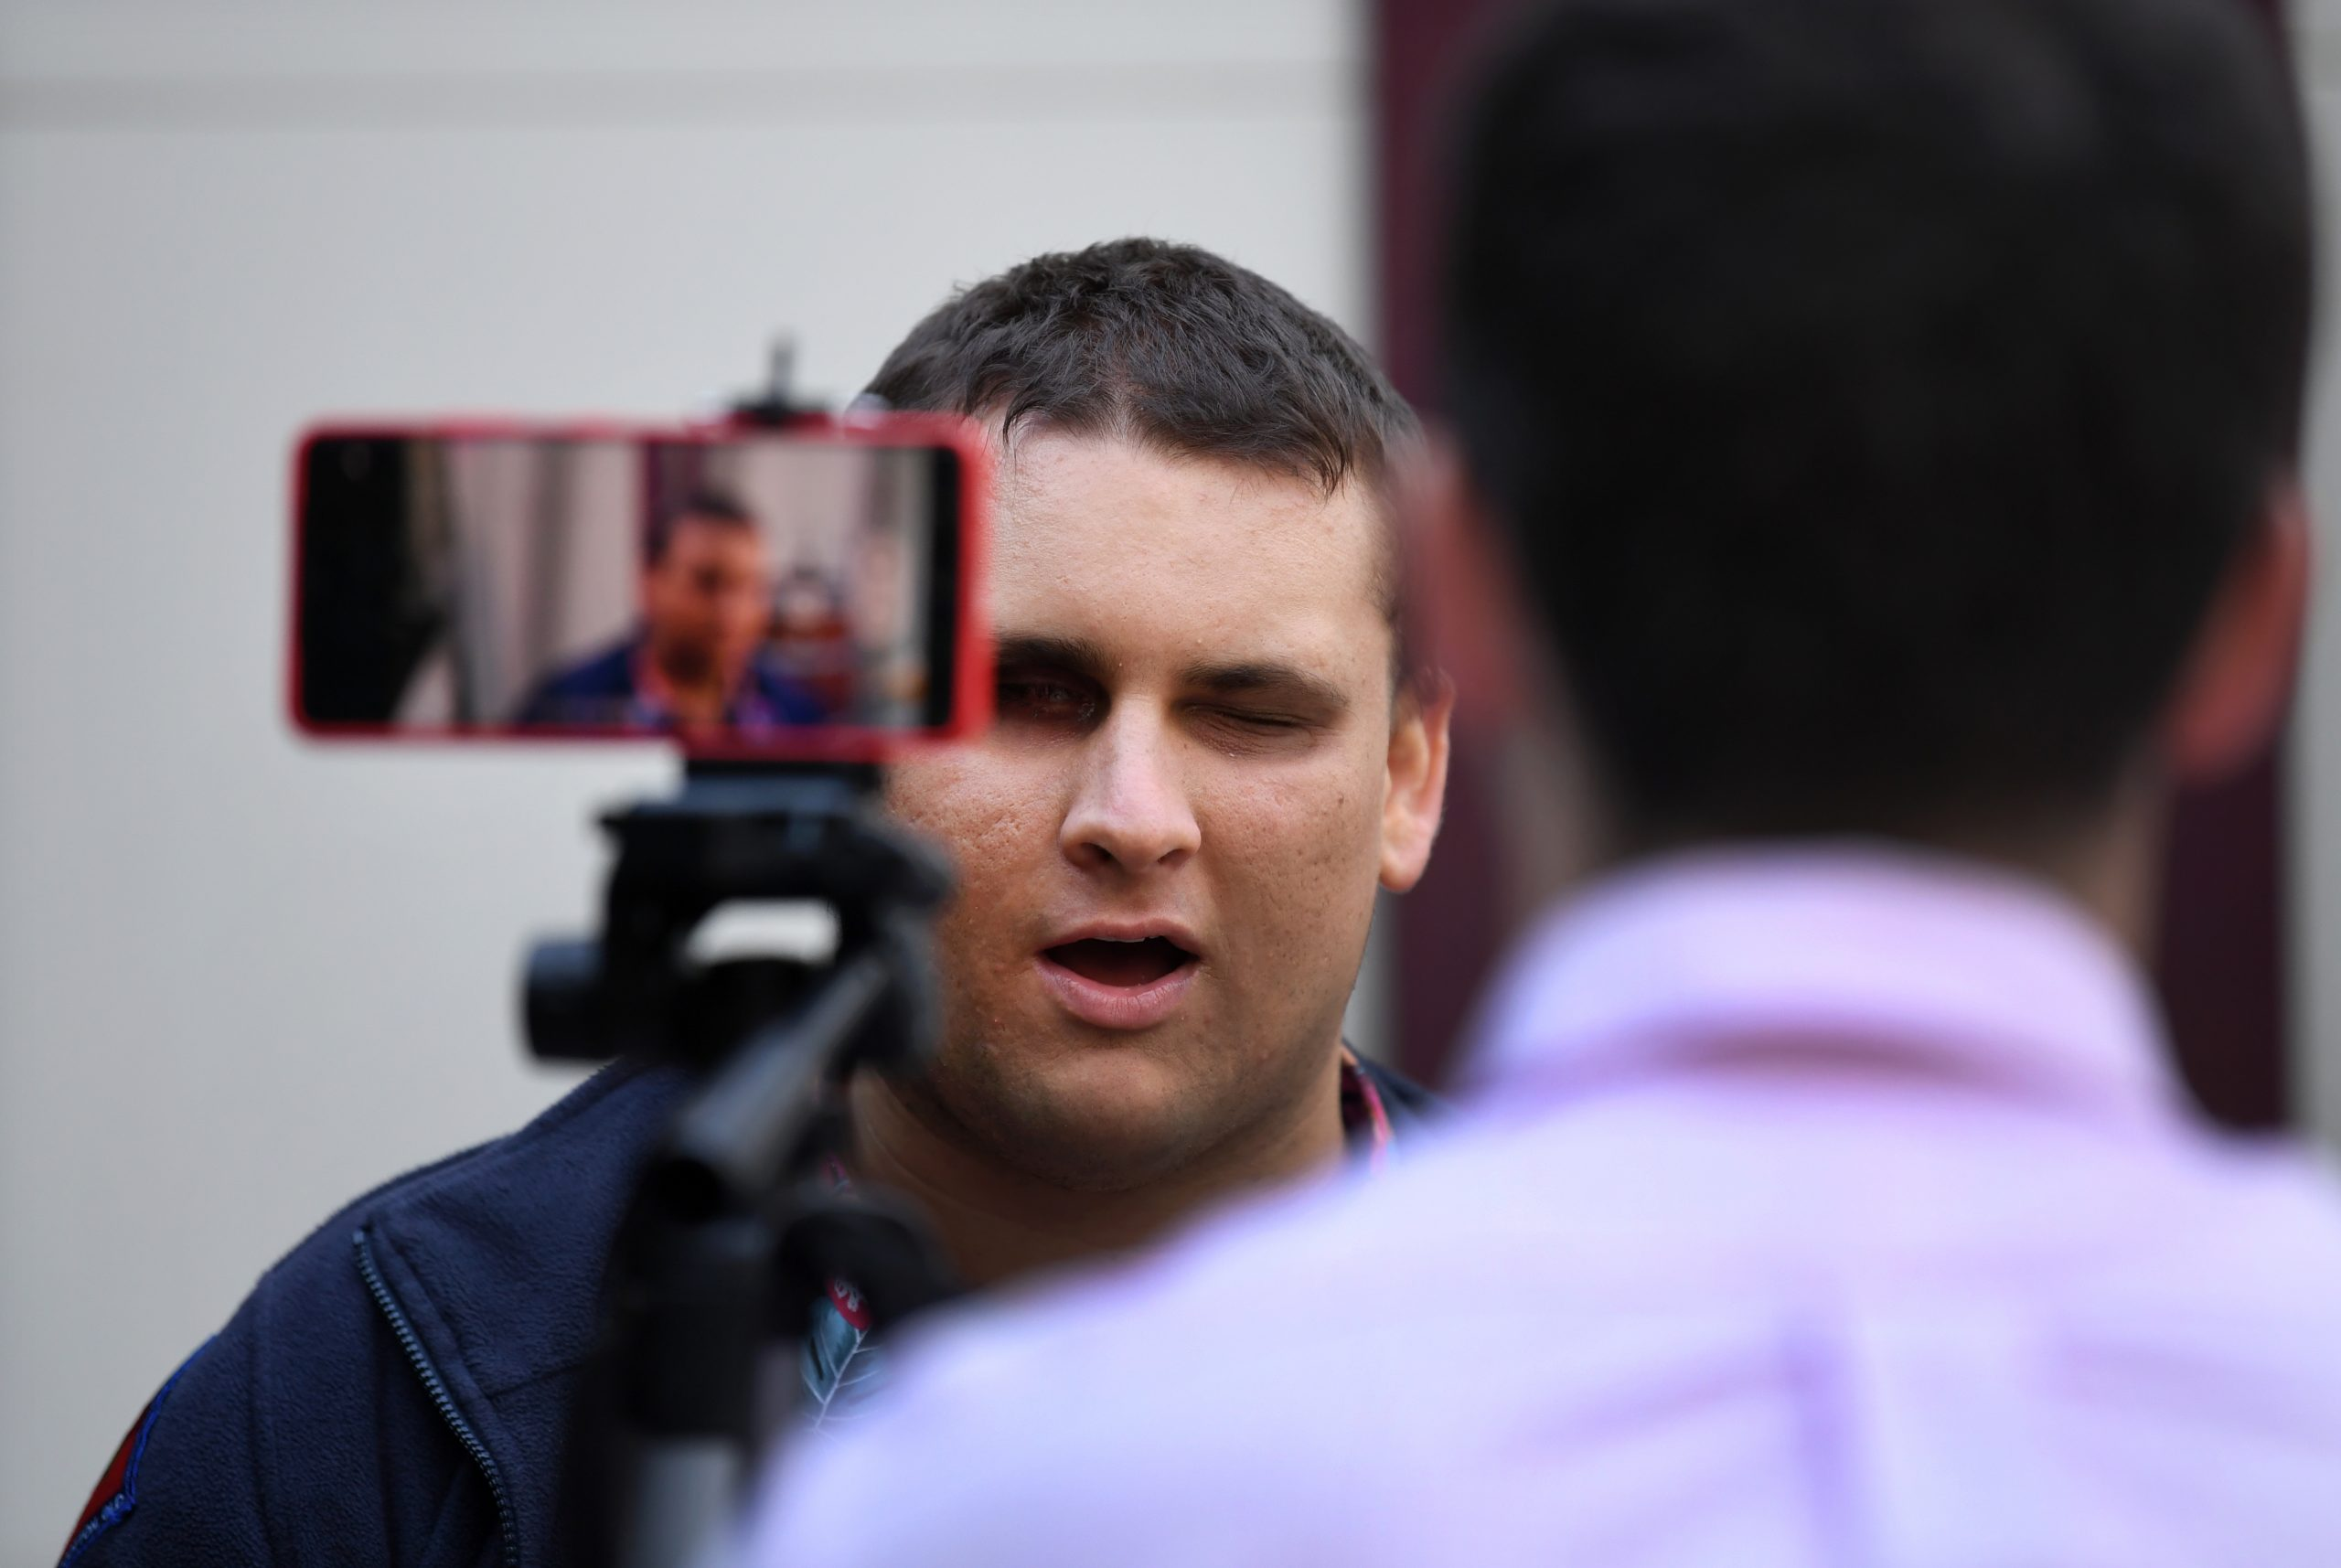 In the foreground you can see a blurred back of a mans head and then a mobile on a tripod recording. The man in front of the camera is in focus.